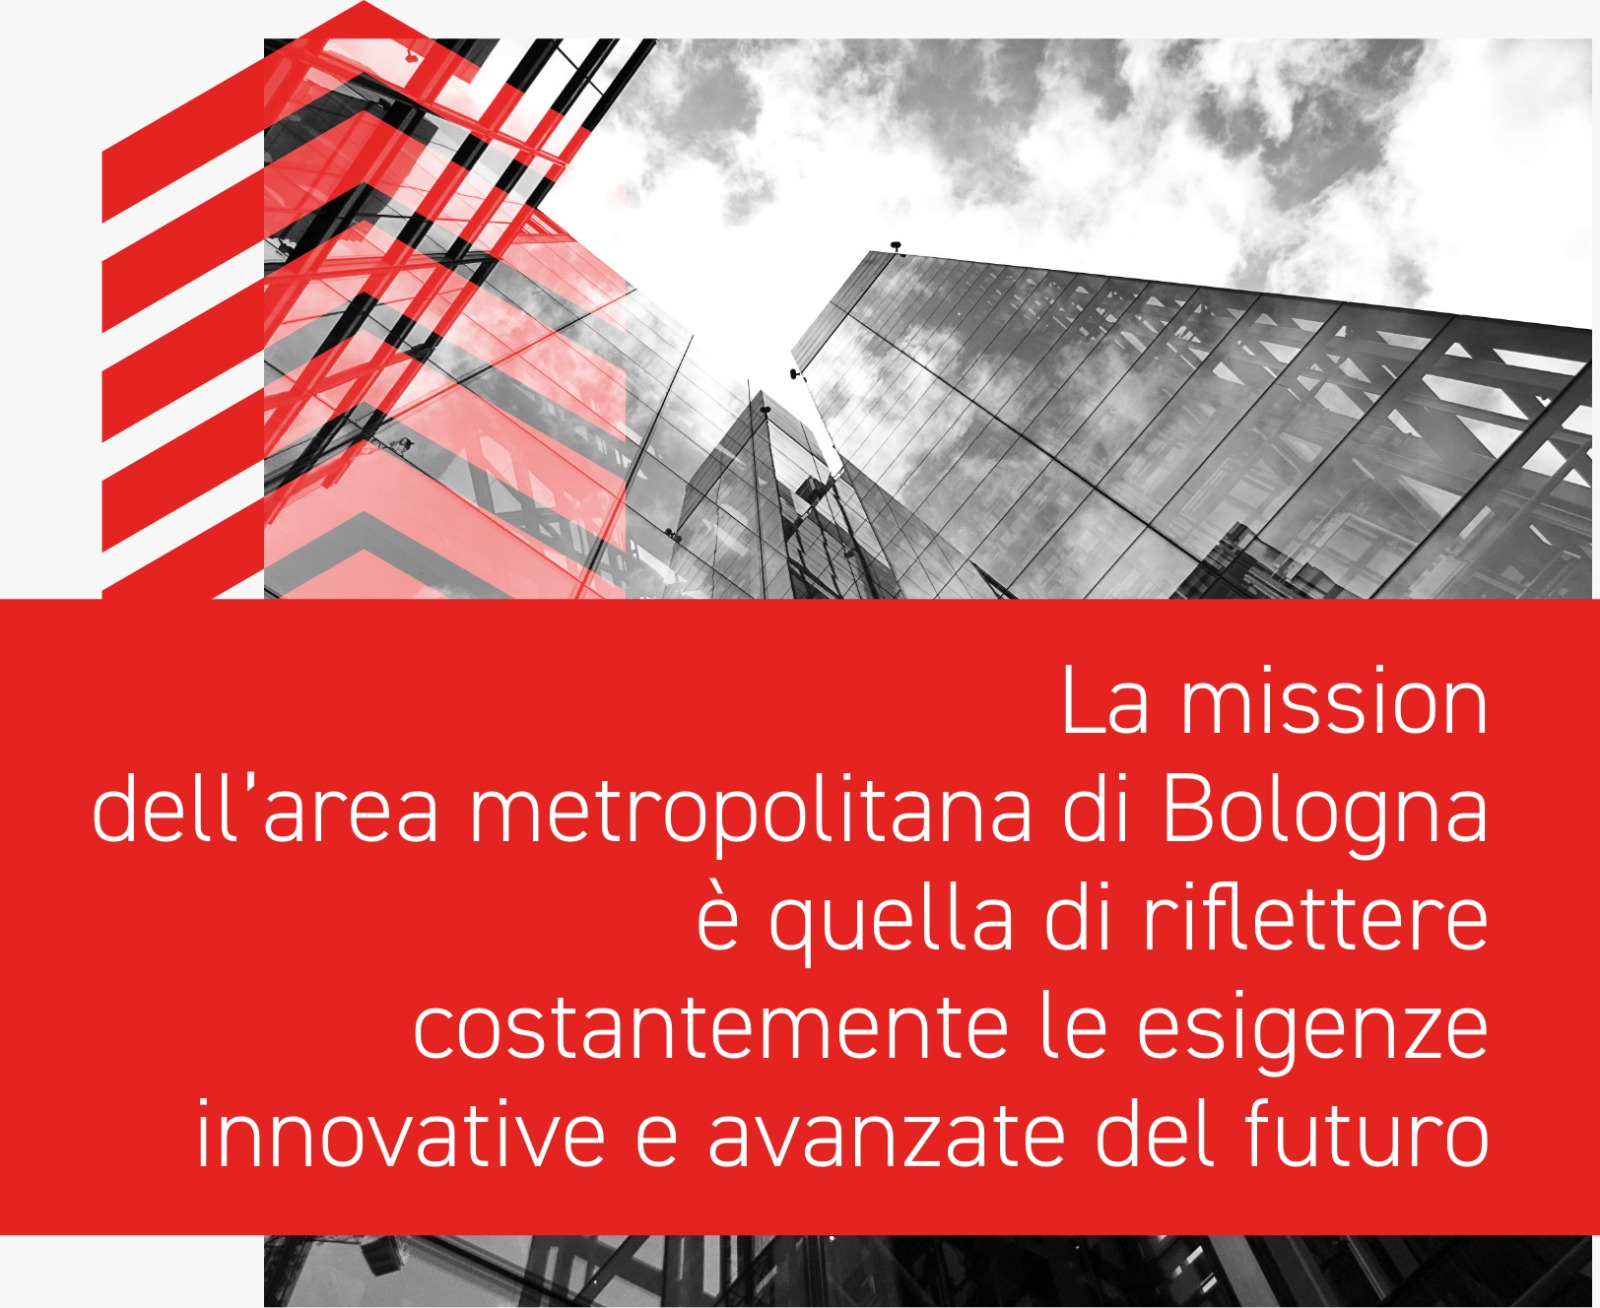 Bologna metropolitan area's mission is to be a constant reflection of the innovative and advanced needs of the future